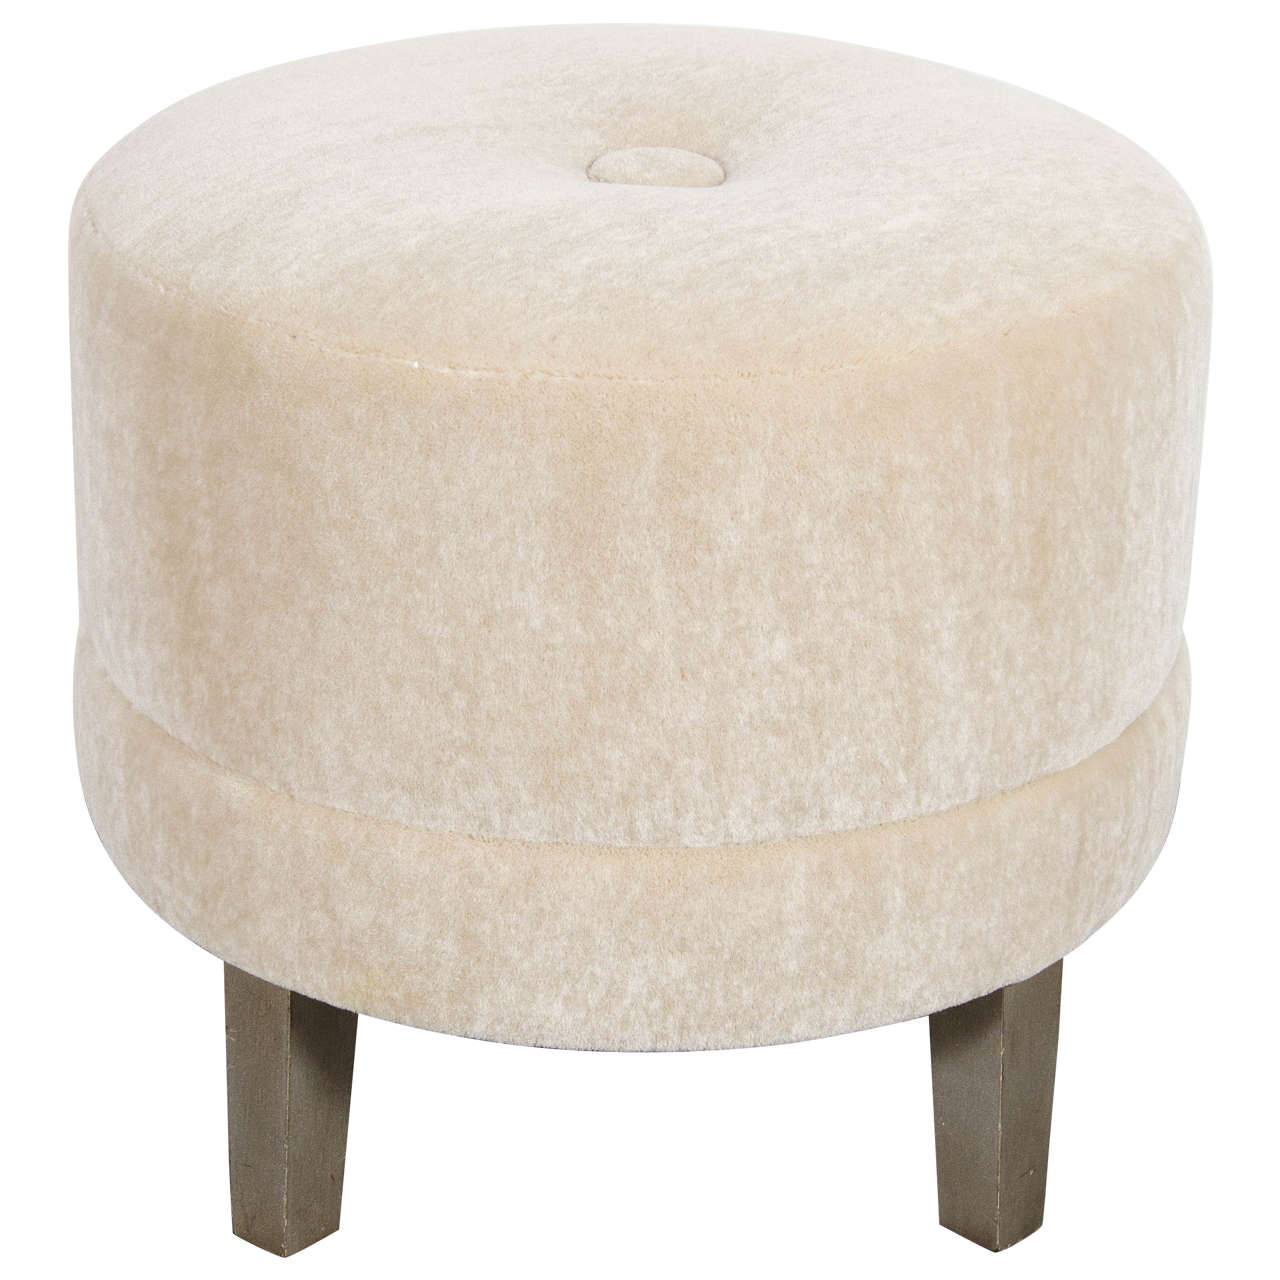 Art Deco Round Stool in Camel Mohair with Button Detail and Silvered Legs 1  sc 1 st  1stDibs & Art Deco Round Stool in Camel Mohair with Button Detail and ... islam-shia.org